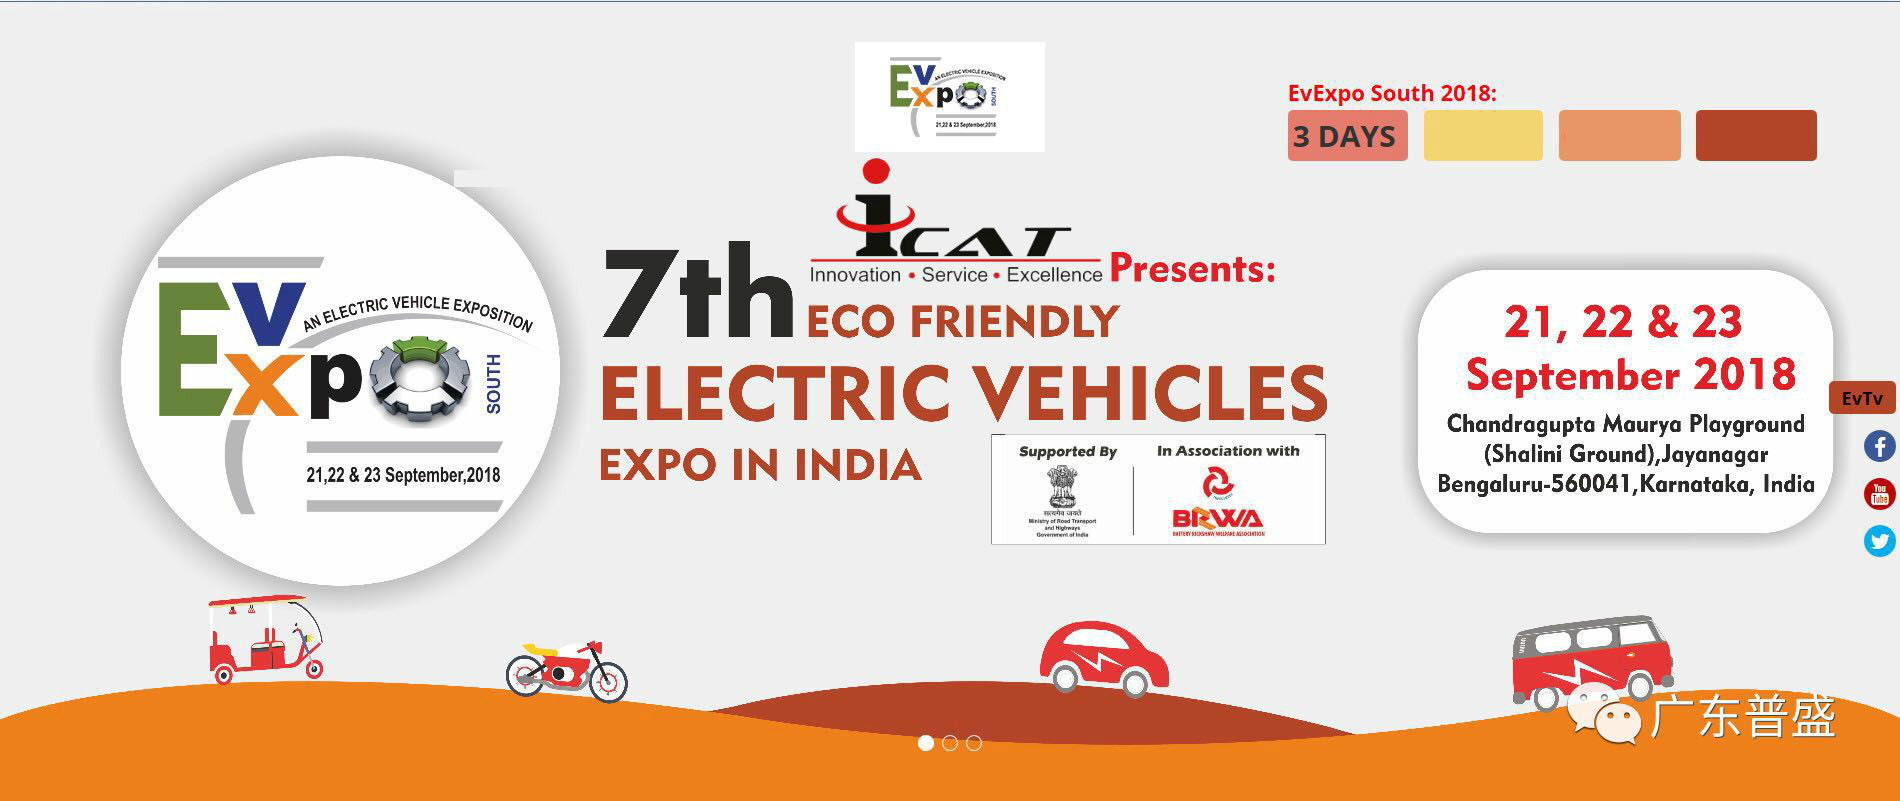 2018 EvExpo in Bangalore India